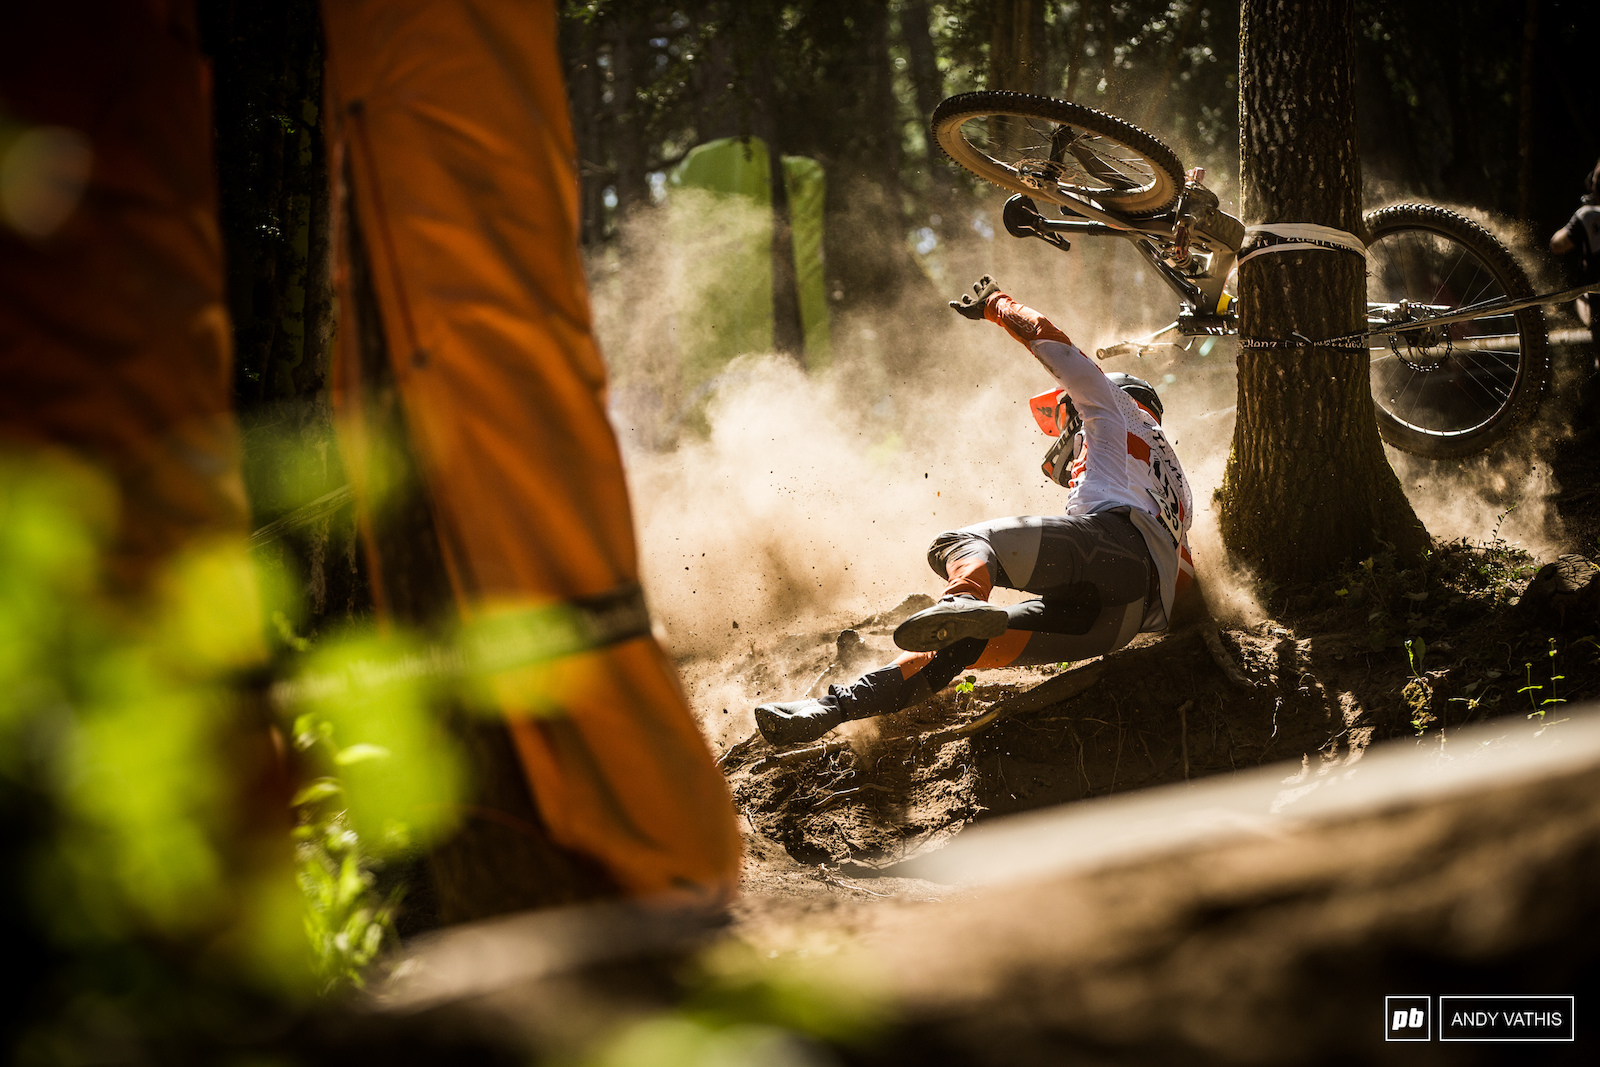 Scary moment for Mick Hannah after a costly mistake in the lower steeps.